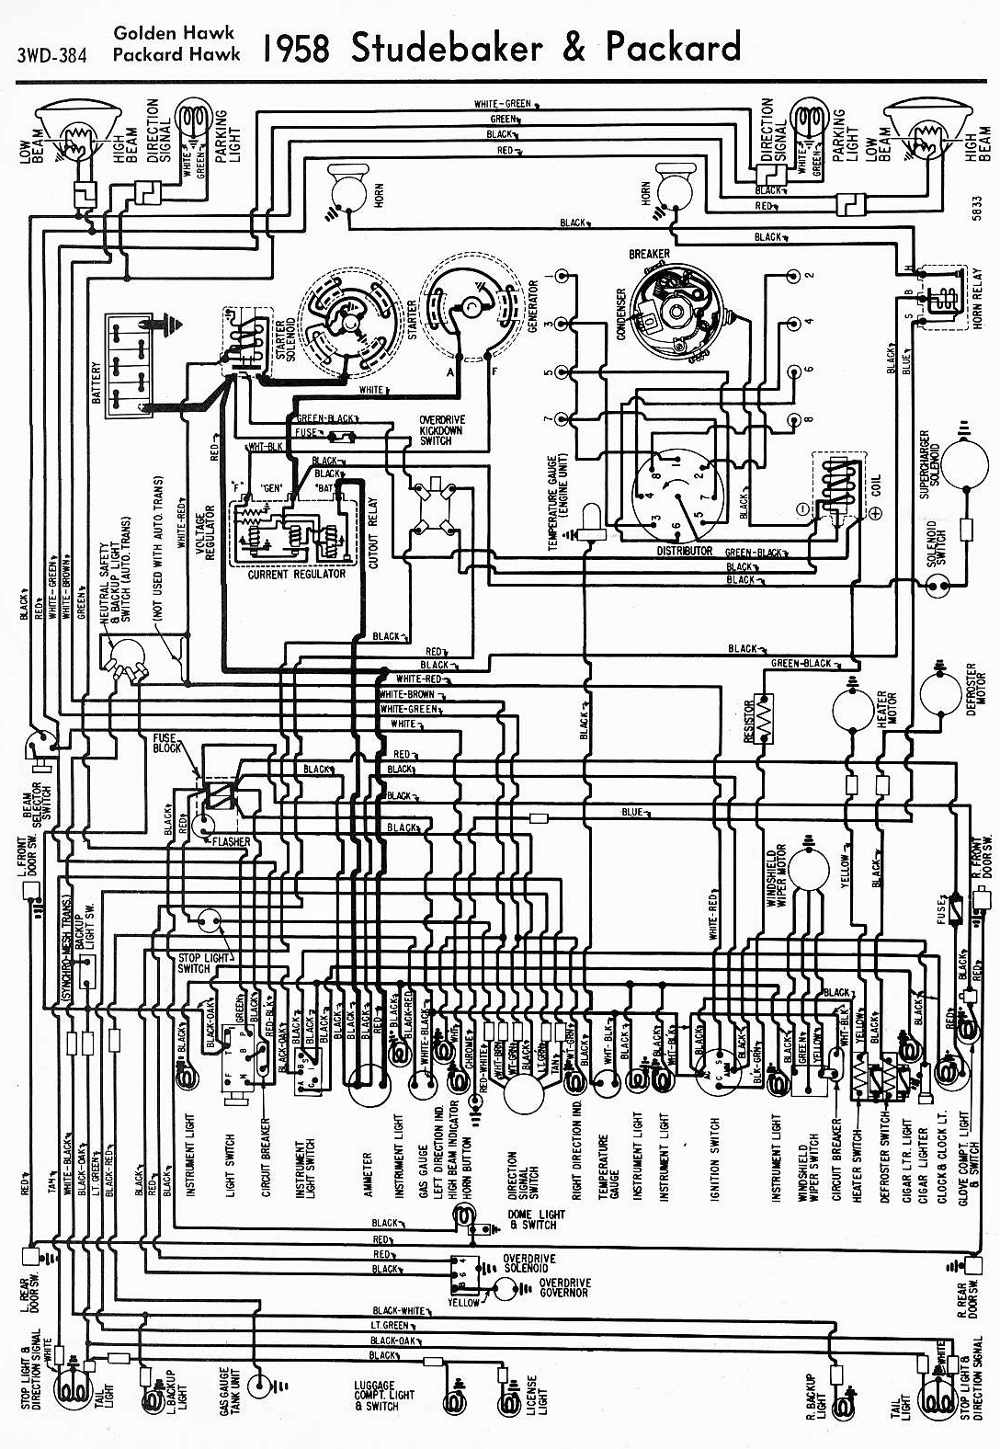 Remarkable 1995 Jaguar Xj6 Wiring Diagram Gallery - Best Image ...